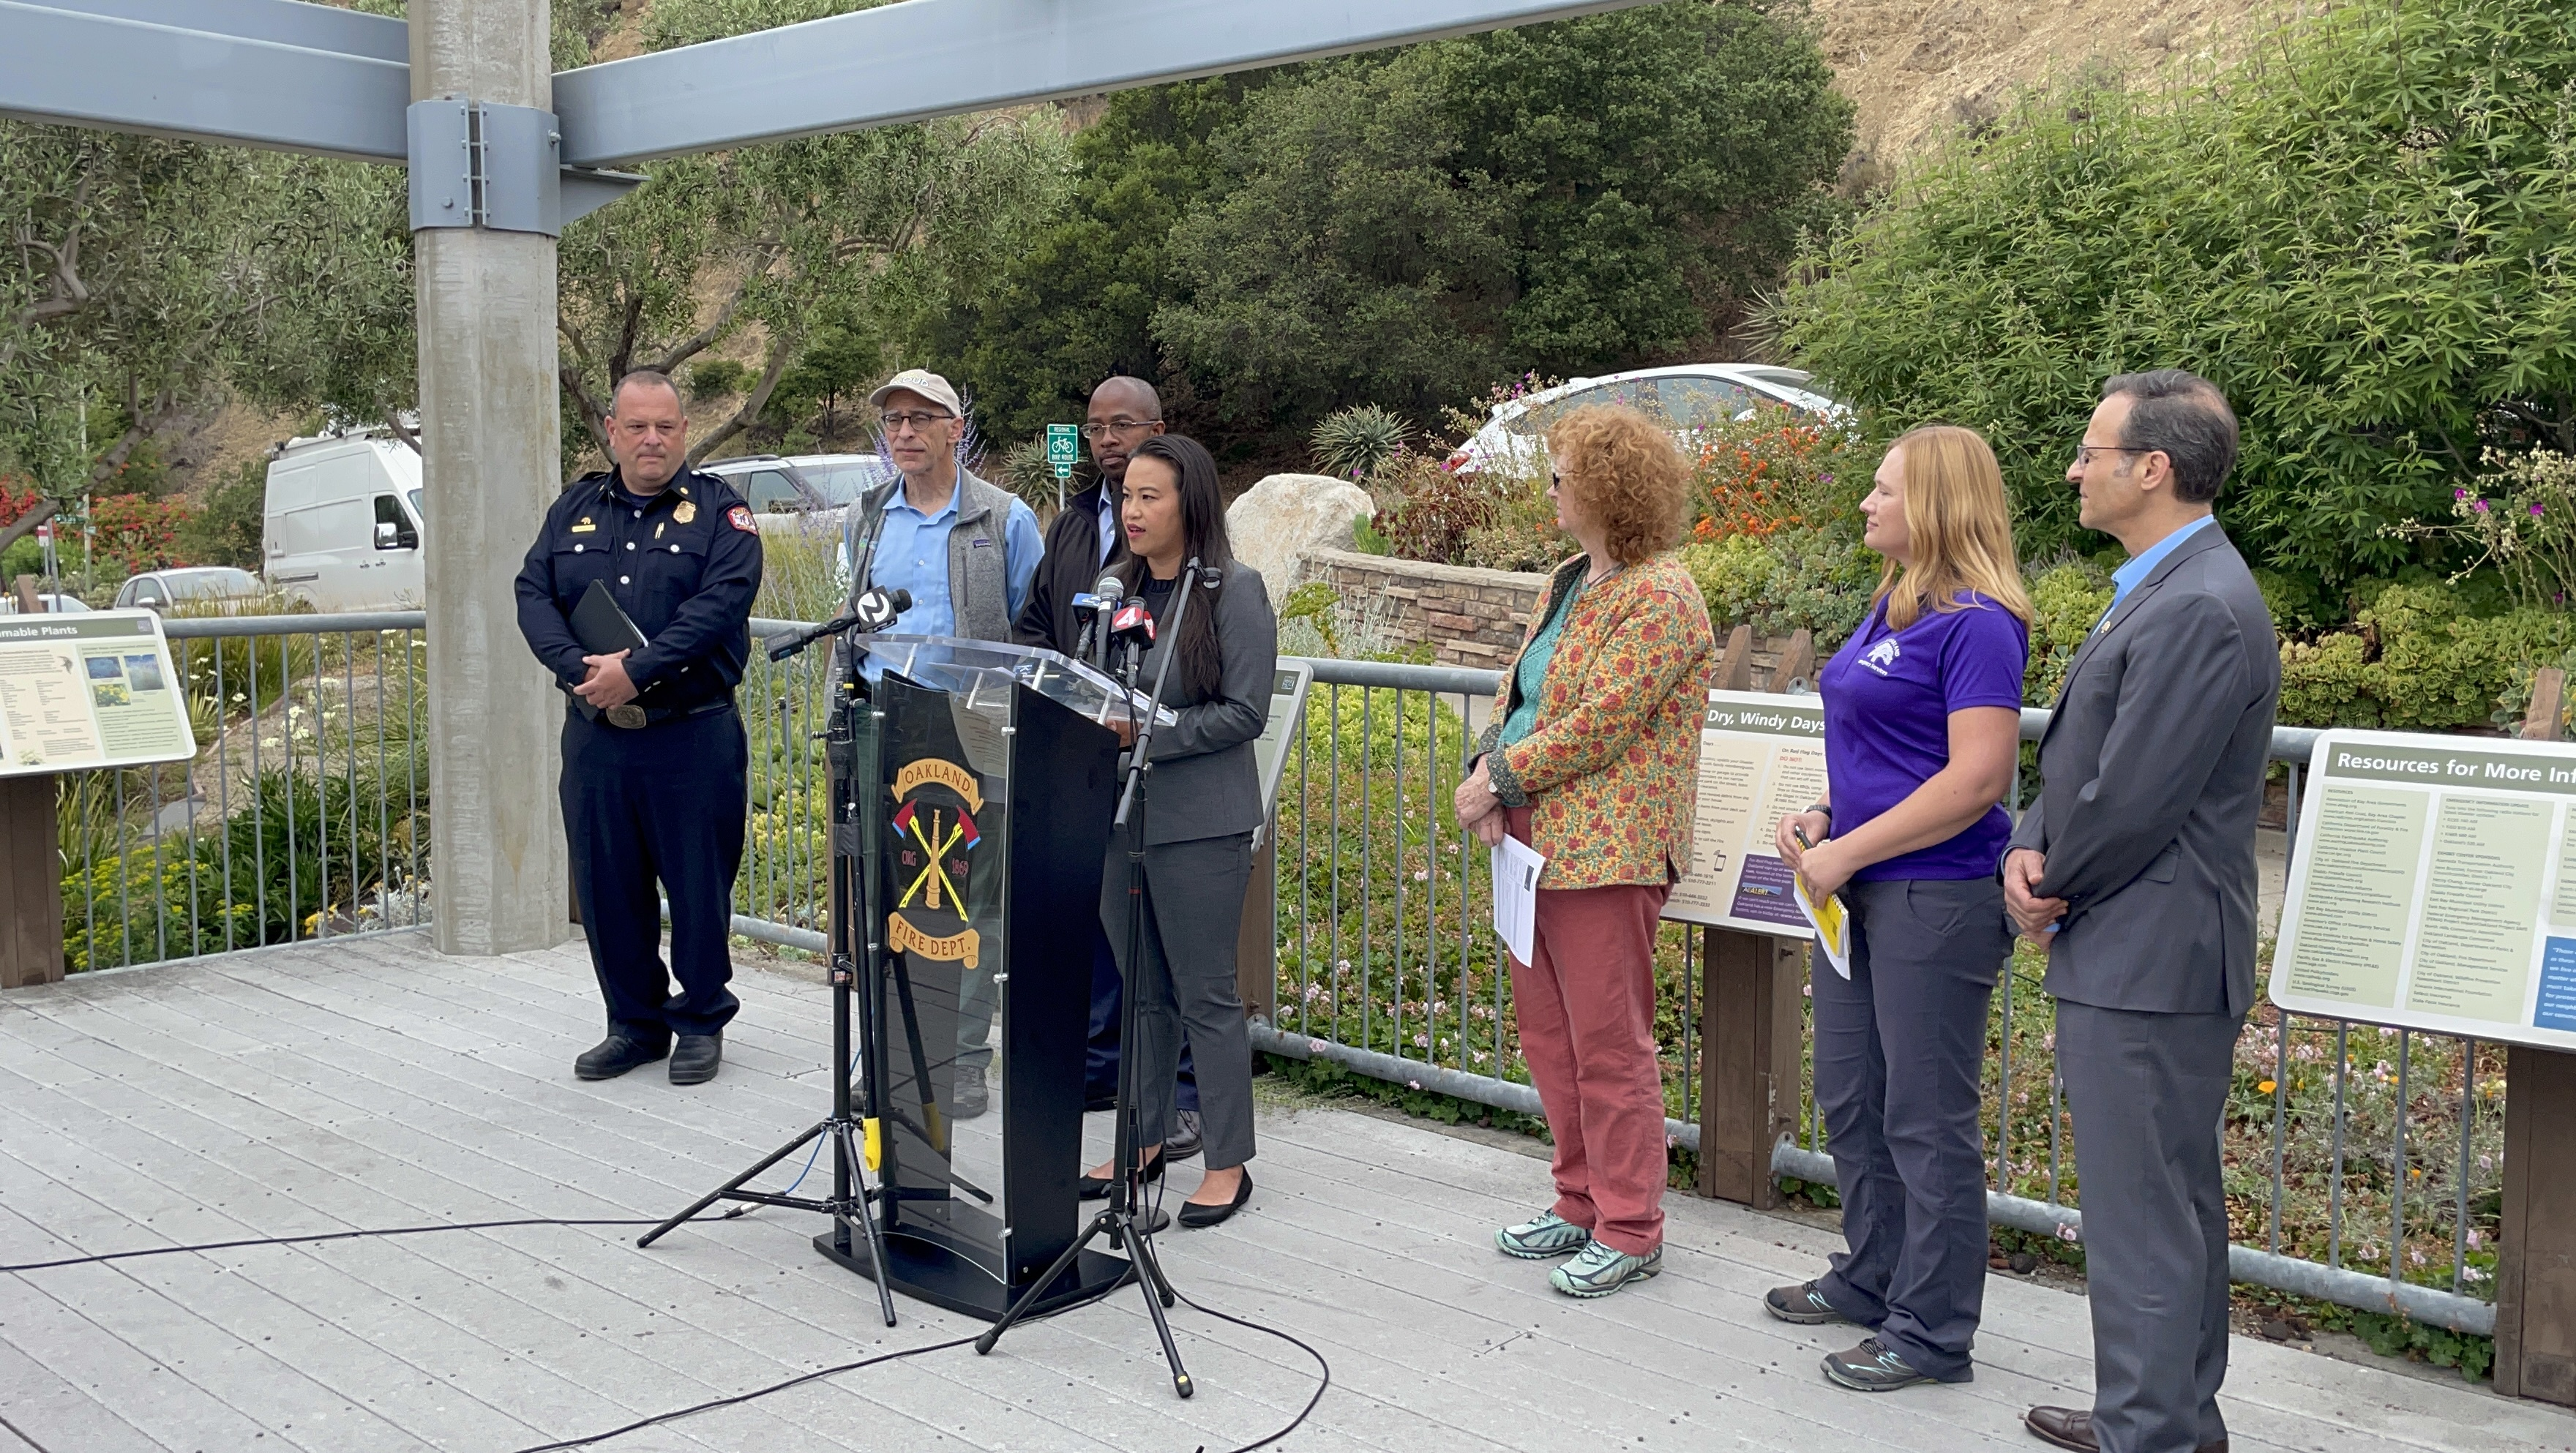 Councilmember Sheng Thao speaks at the site of the tunnel fire while surrounded by city staff and Councilmember's Kalb and Taylor